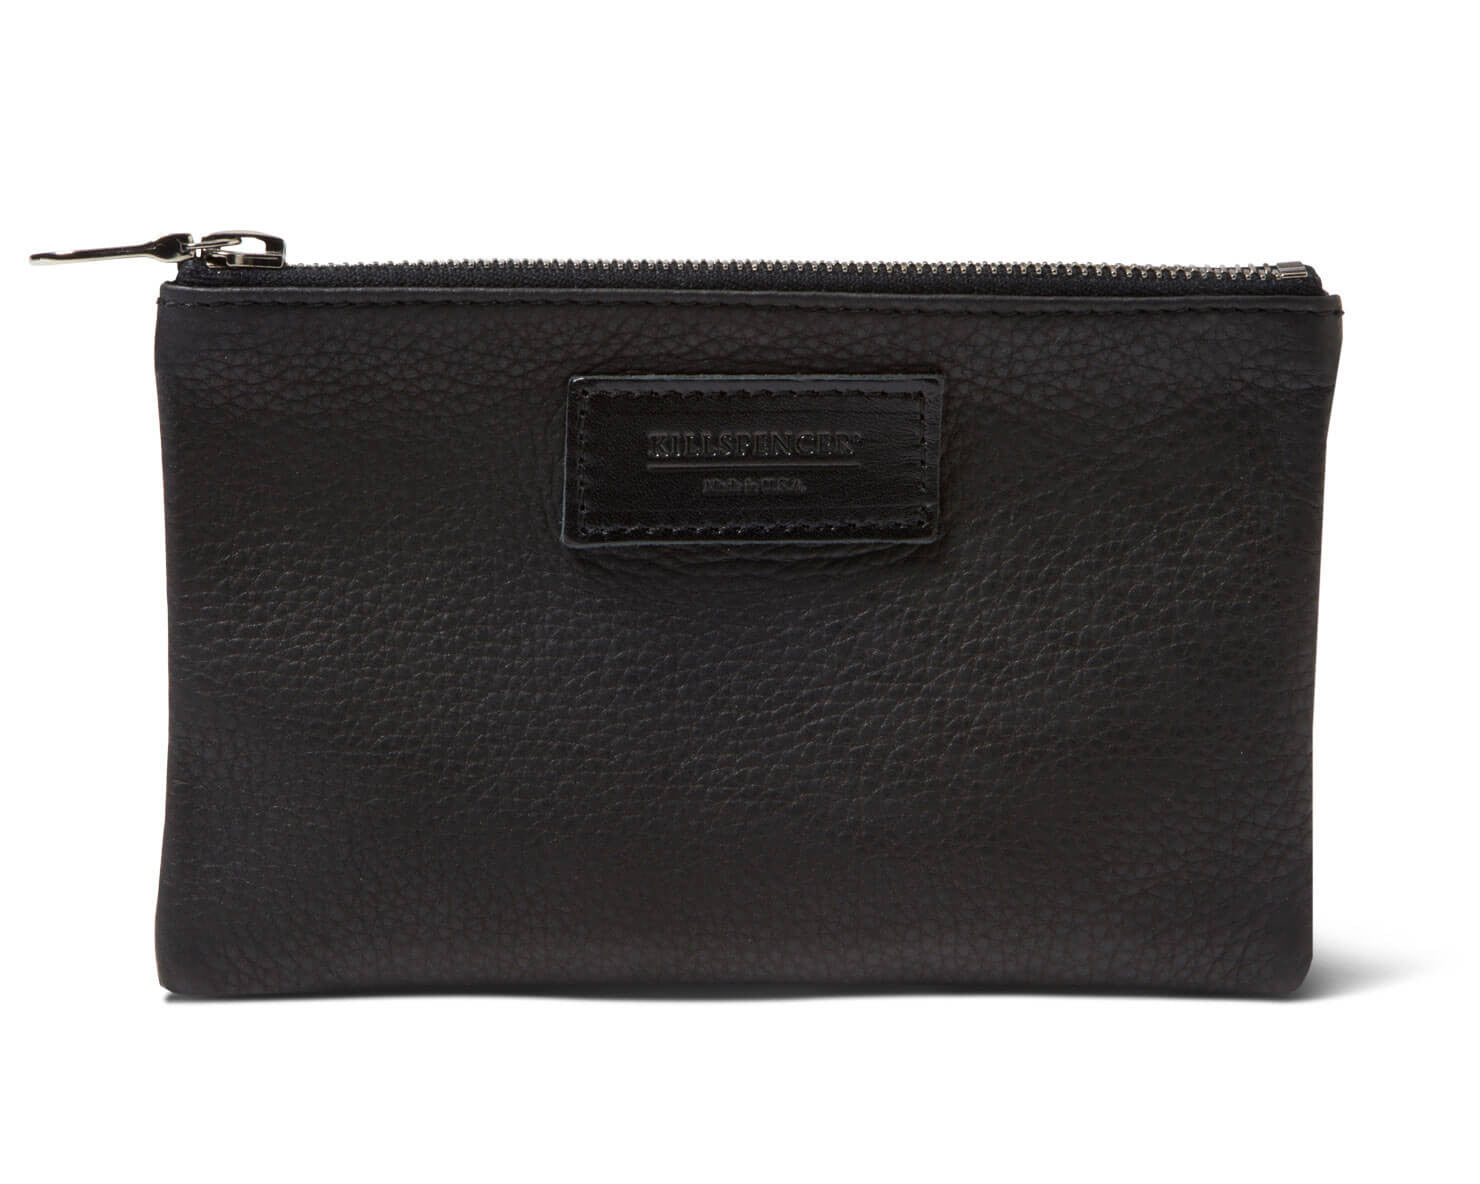 MINI ZIPPERED POUCH | KILLSPENCER® - Black Leather